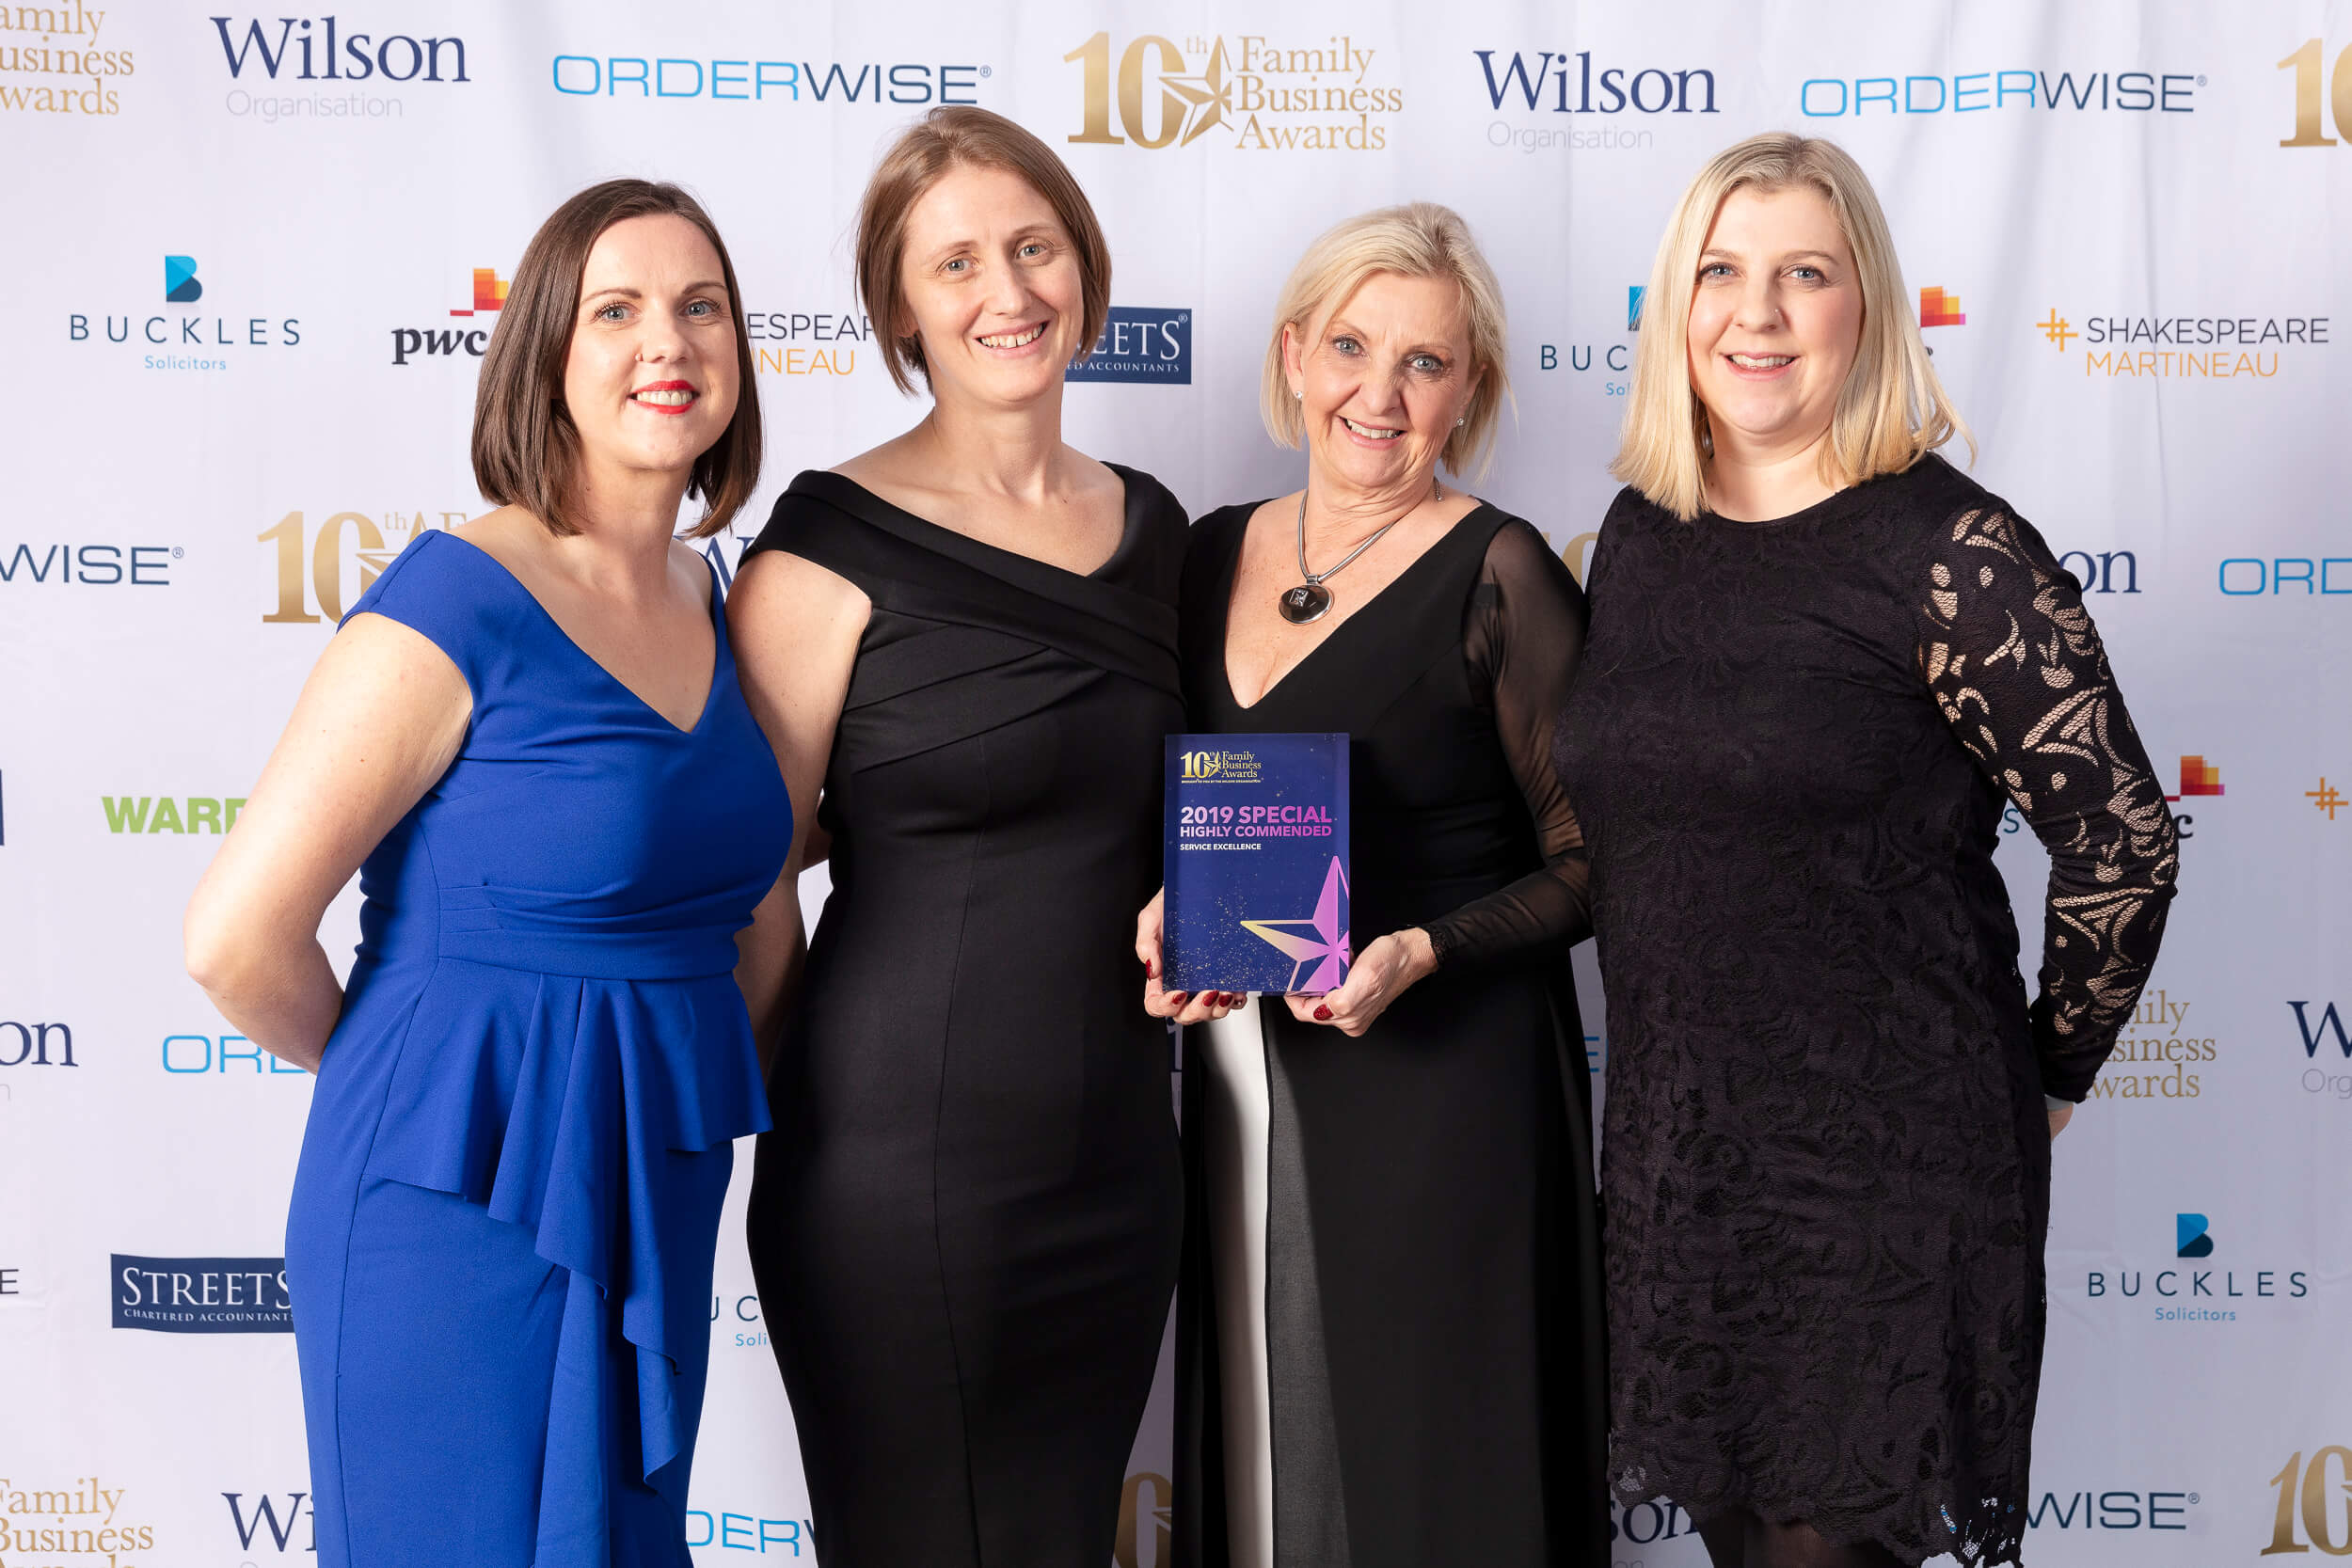 Absolute Works receives 'Special Highly Commended' for Service Excellence in the prestigious Midlands Family Business Awards